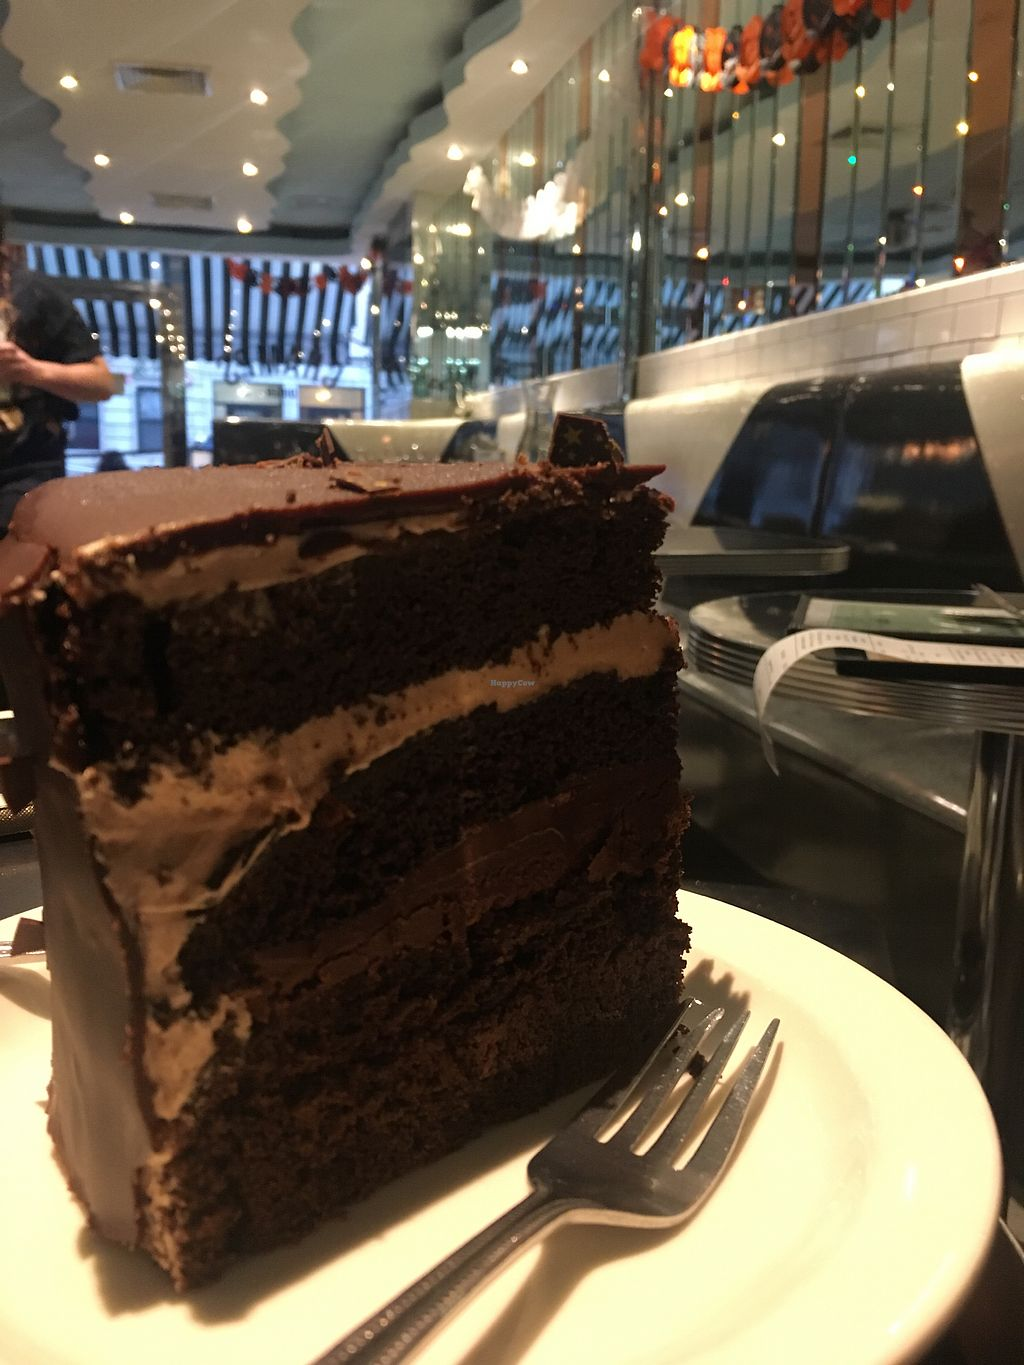 "Photo of Champs Diner  by <a href=""/members/profile/ShelbieMoser"">ShelbieMoser</a> <br/>Death by chocolate cake  <br/> October 19, 2017  - <a href='/contact/abuse/image/24286/316503'>Report</a>"